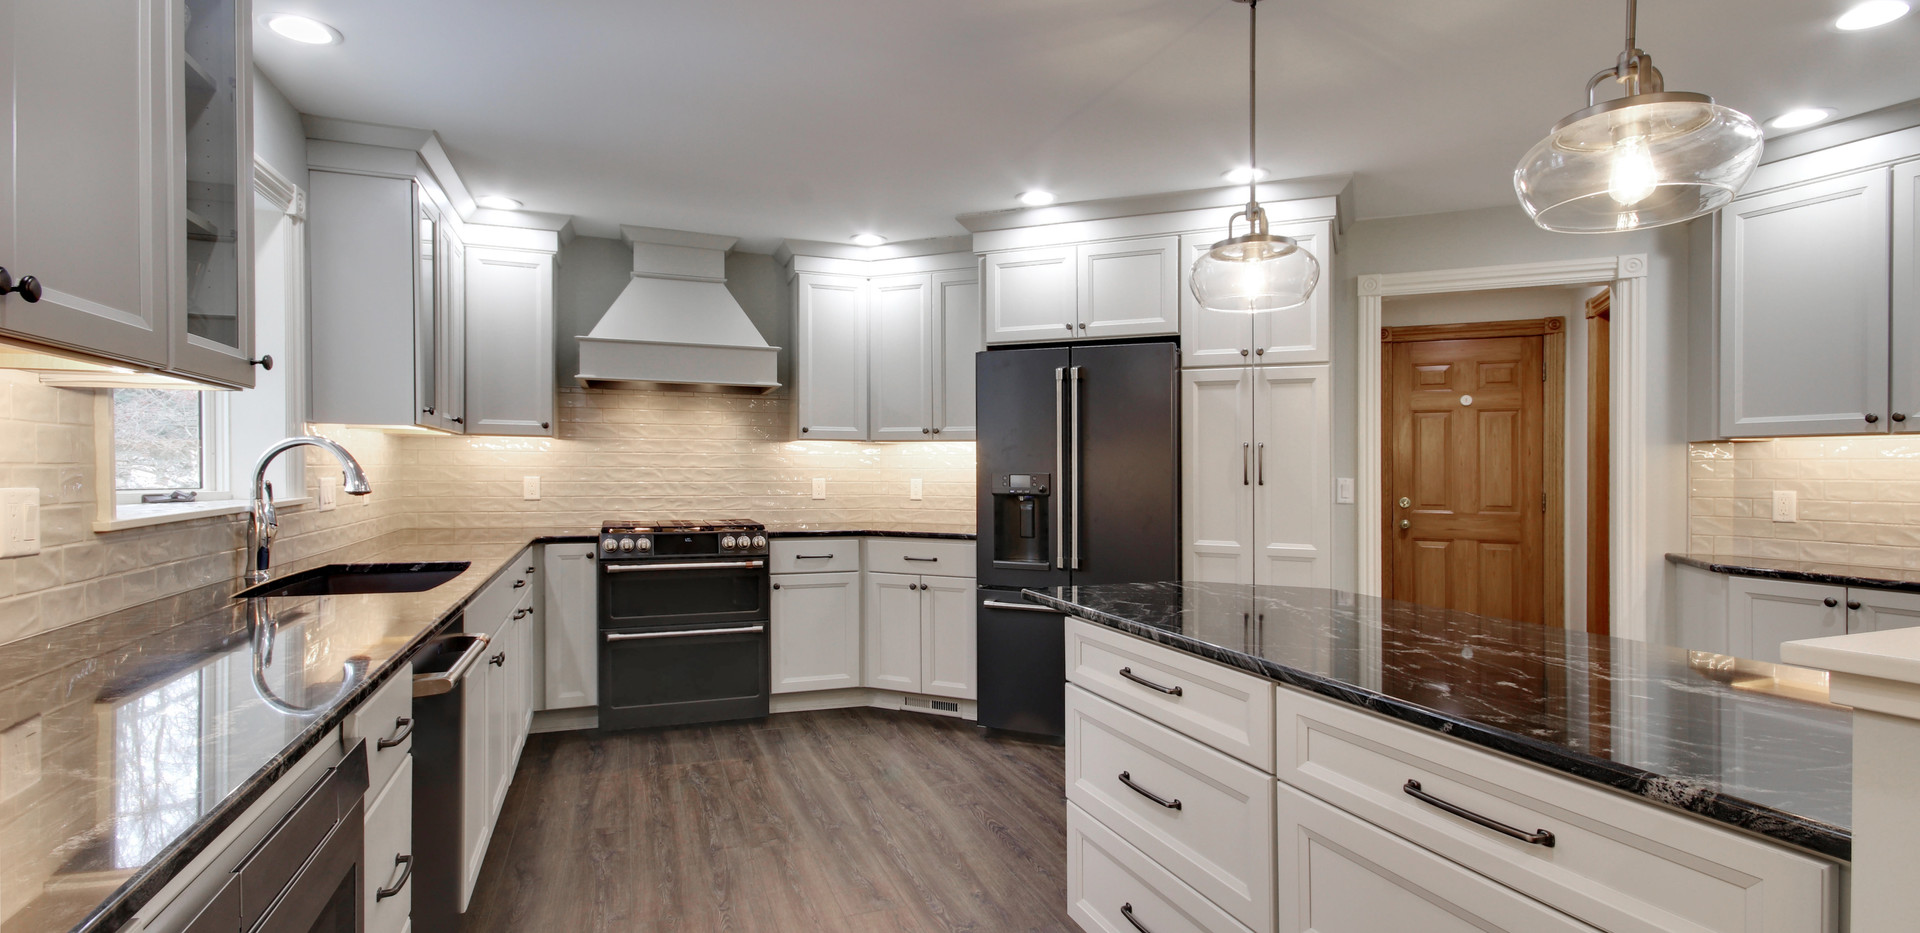 Beautiful modern kitchen remodel project in Jenison by Renew Home Improvement remodeling contractor